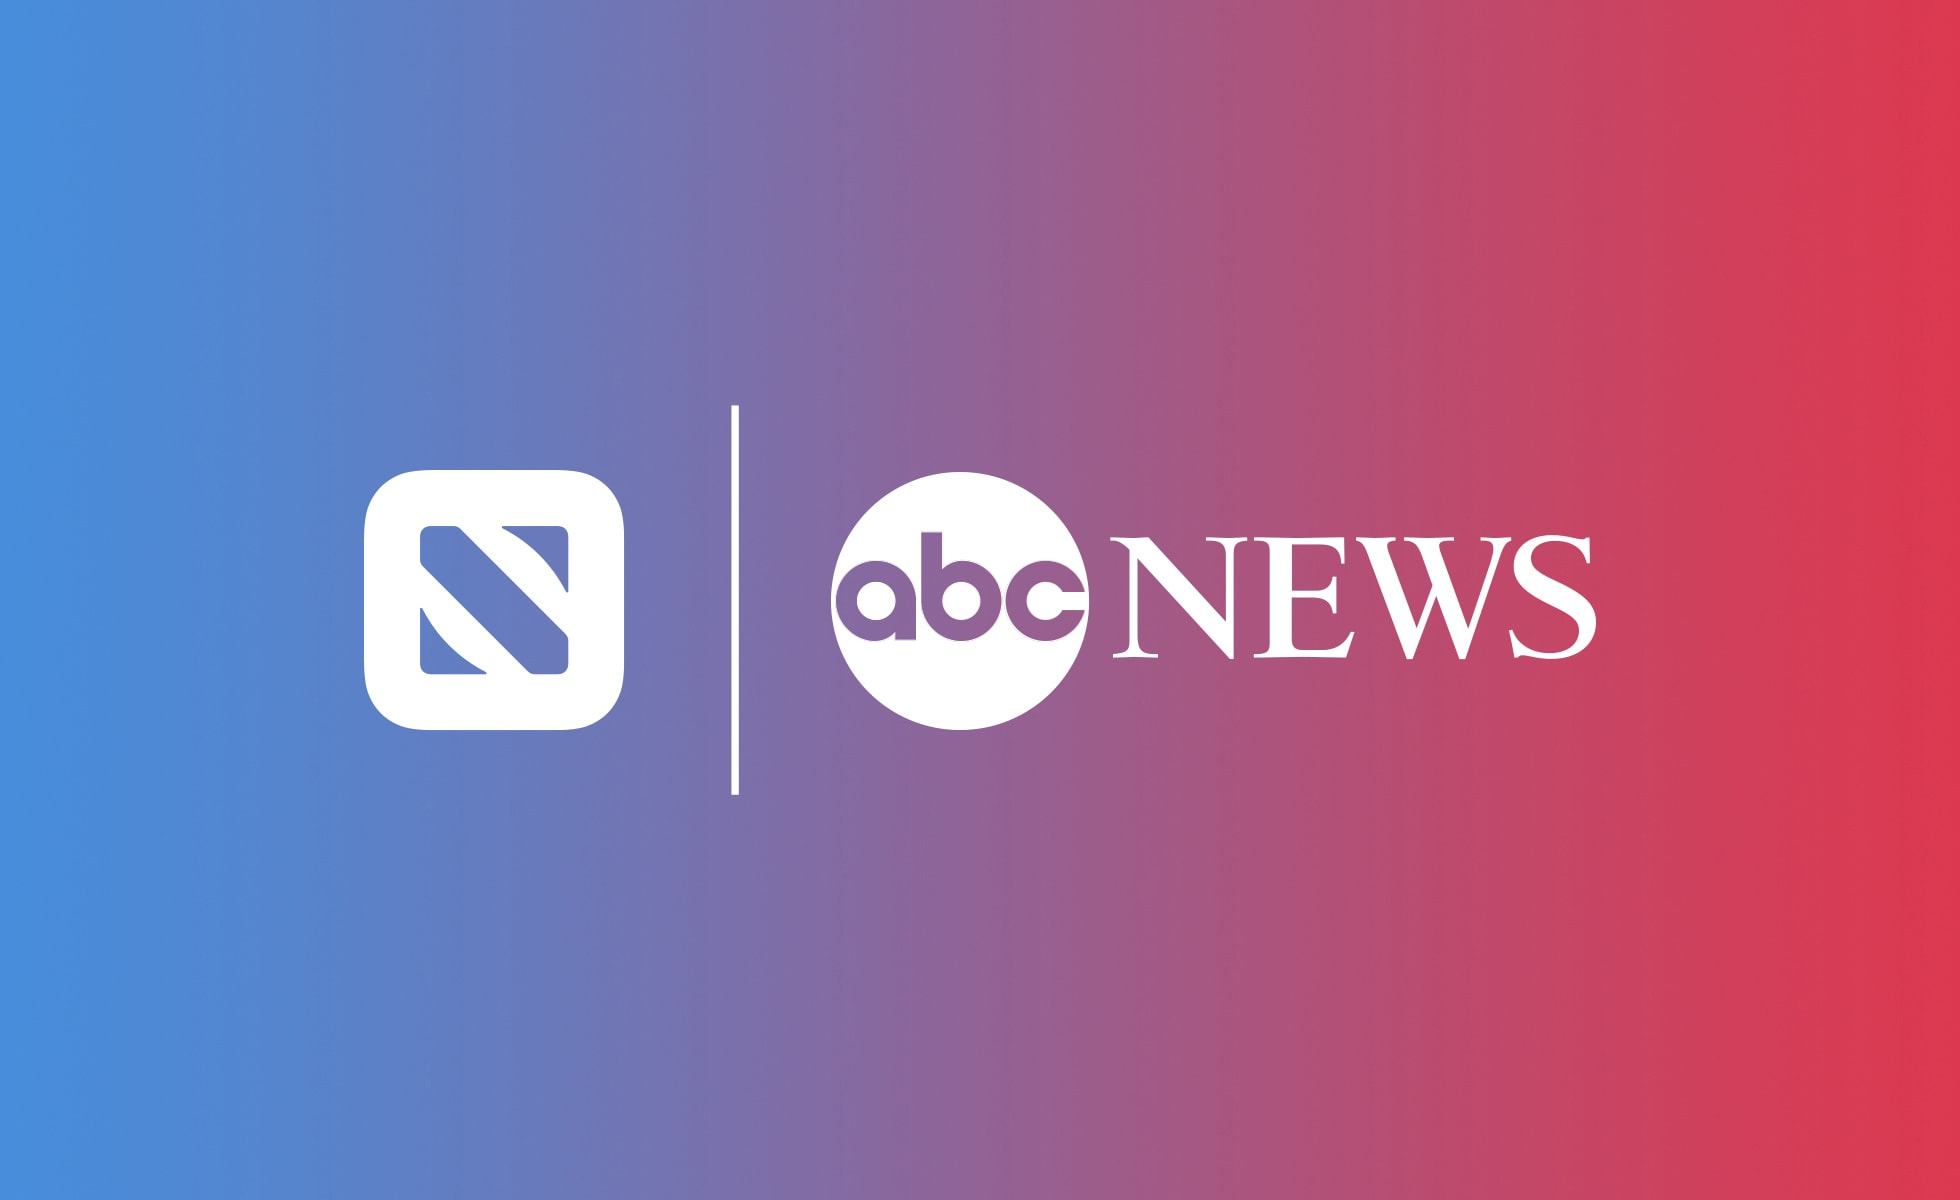 Apple-News-ABC-News